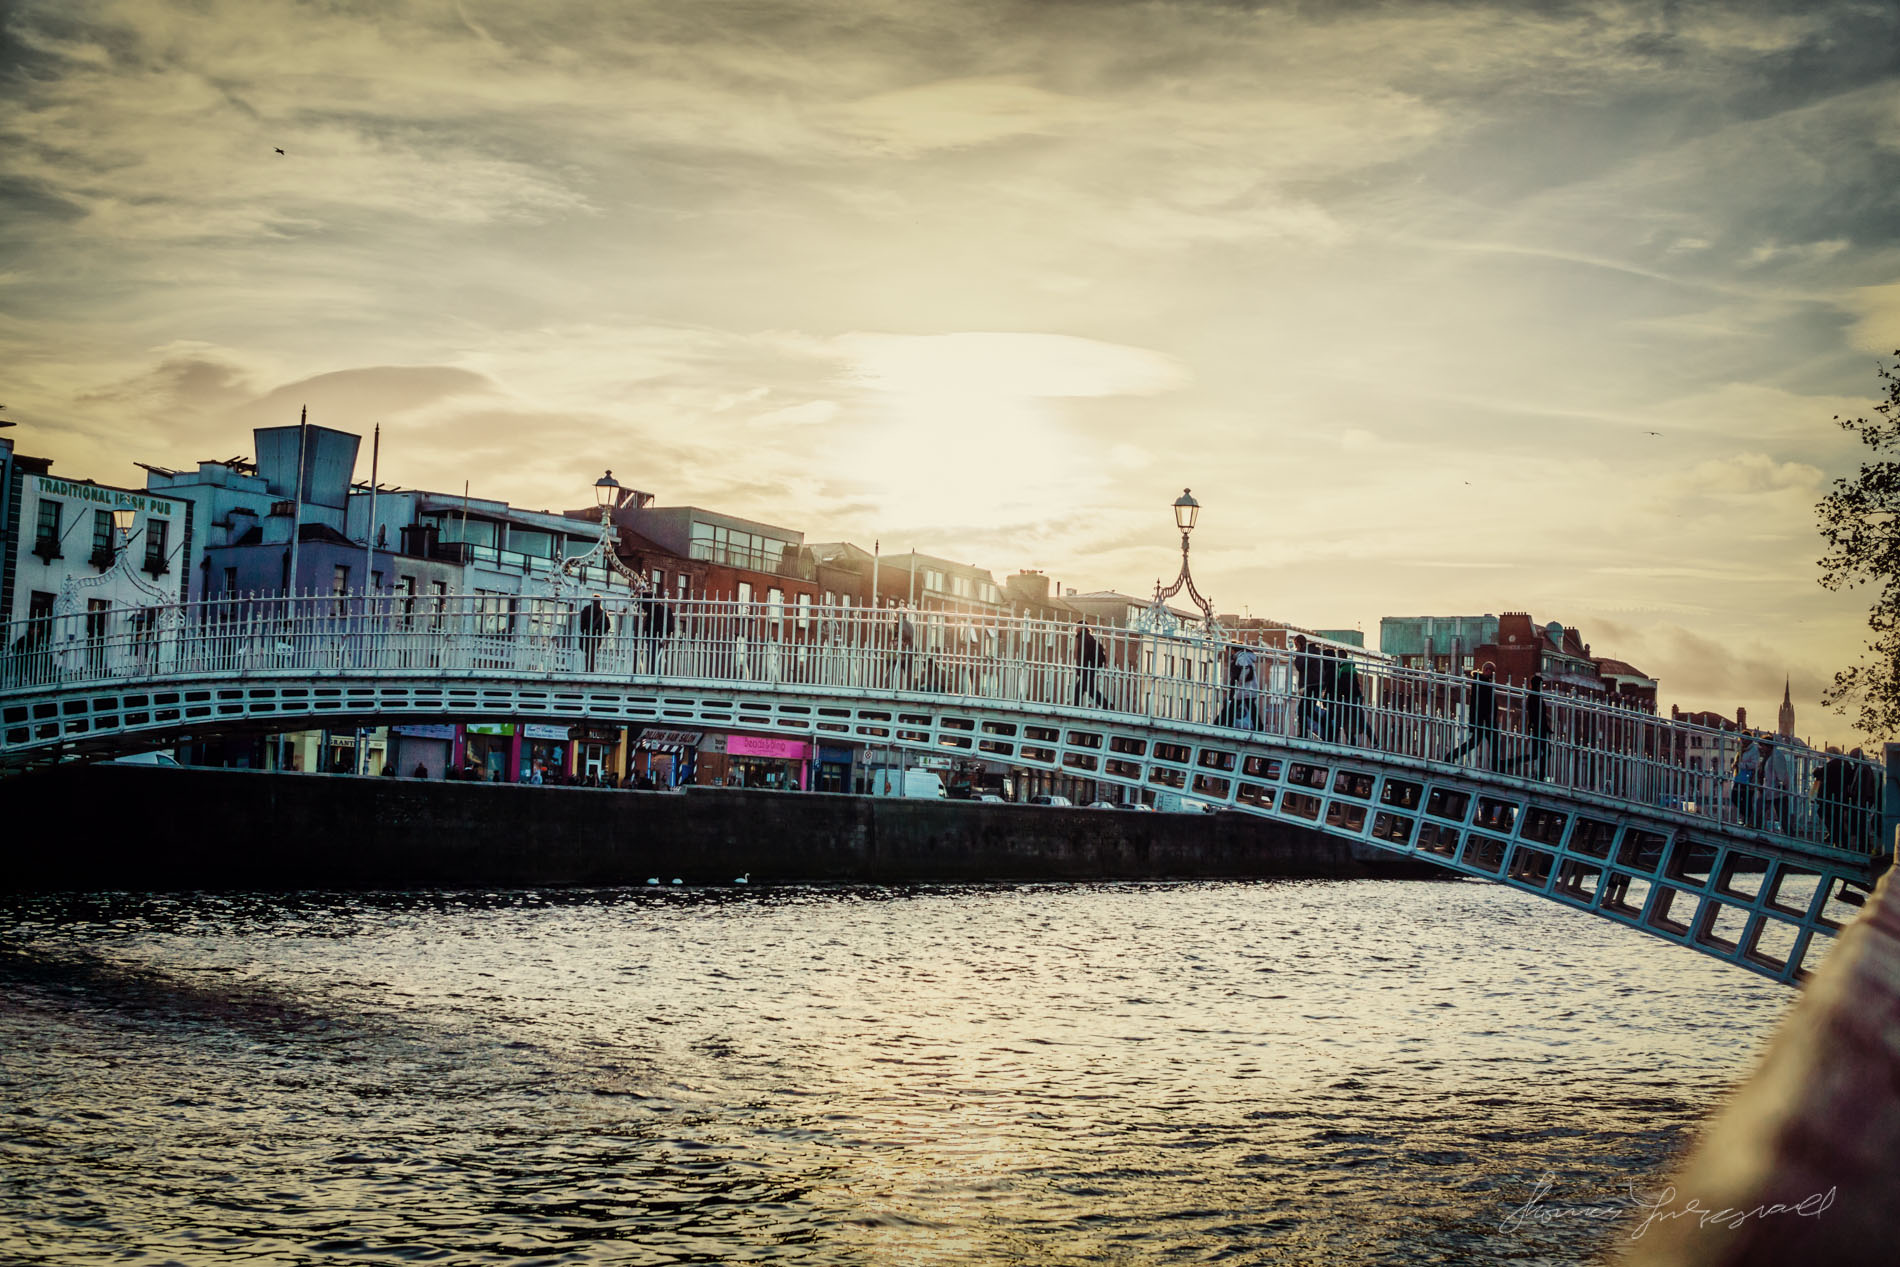 Ha'penny Bridge at sunset